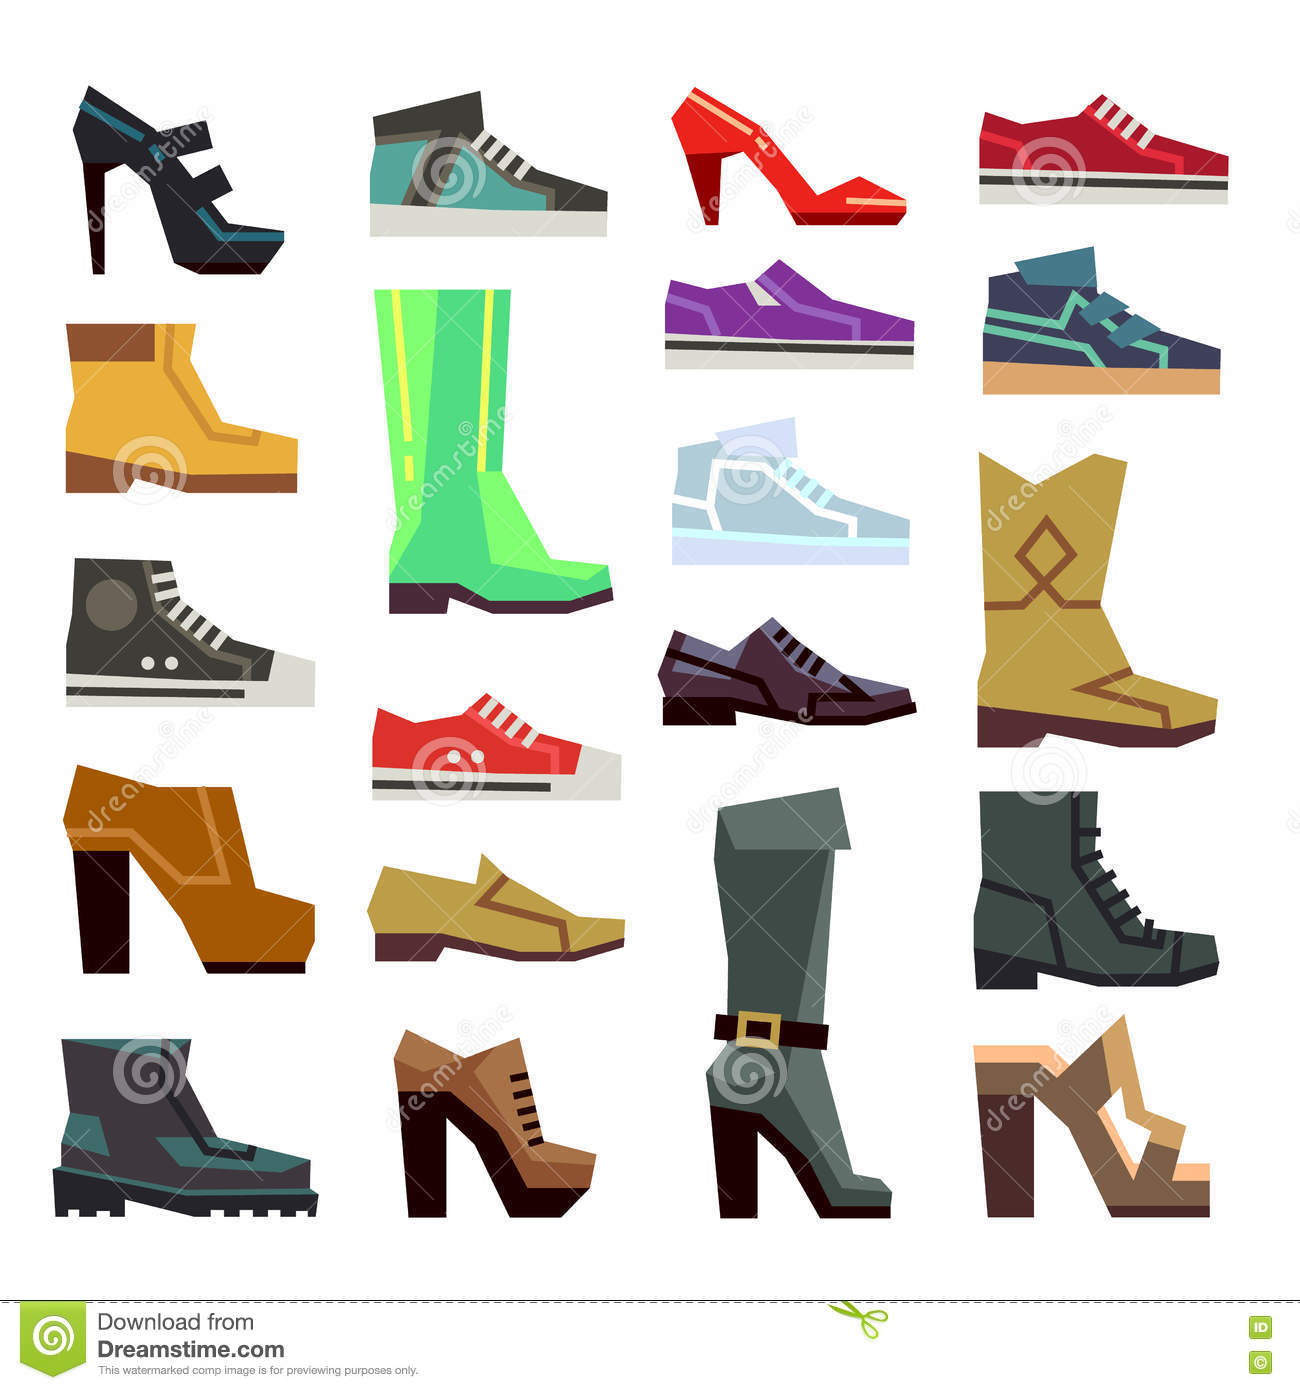 268111a6e187 Different Footwear Casual Shoes Vector Set Stock Vector ...